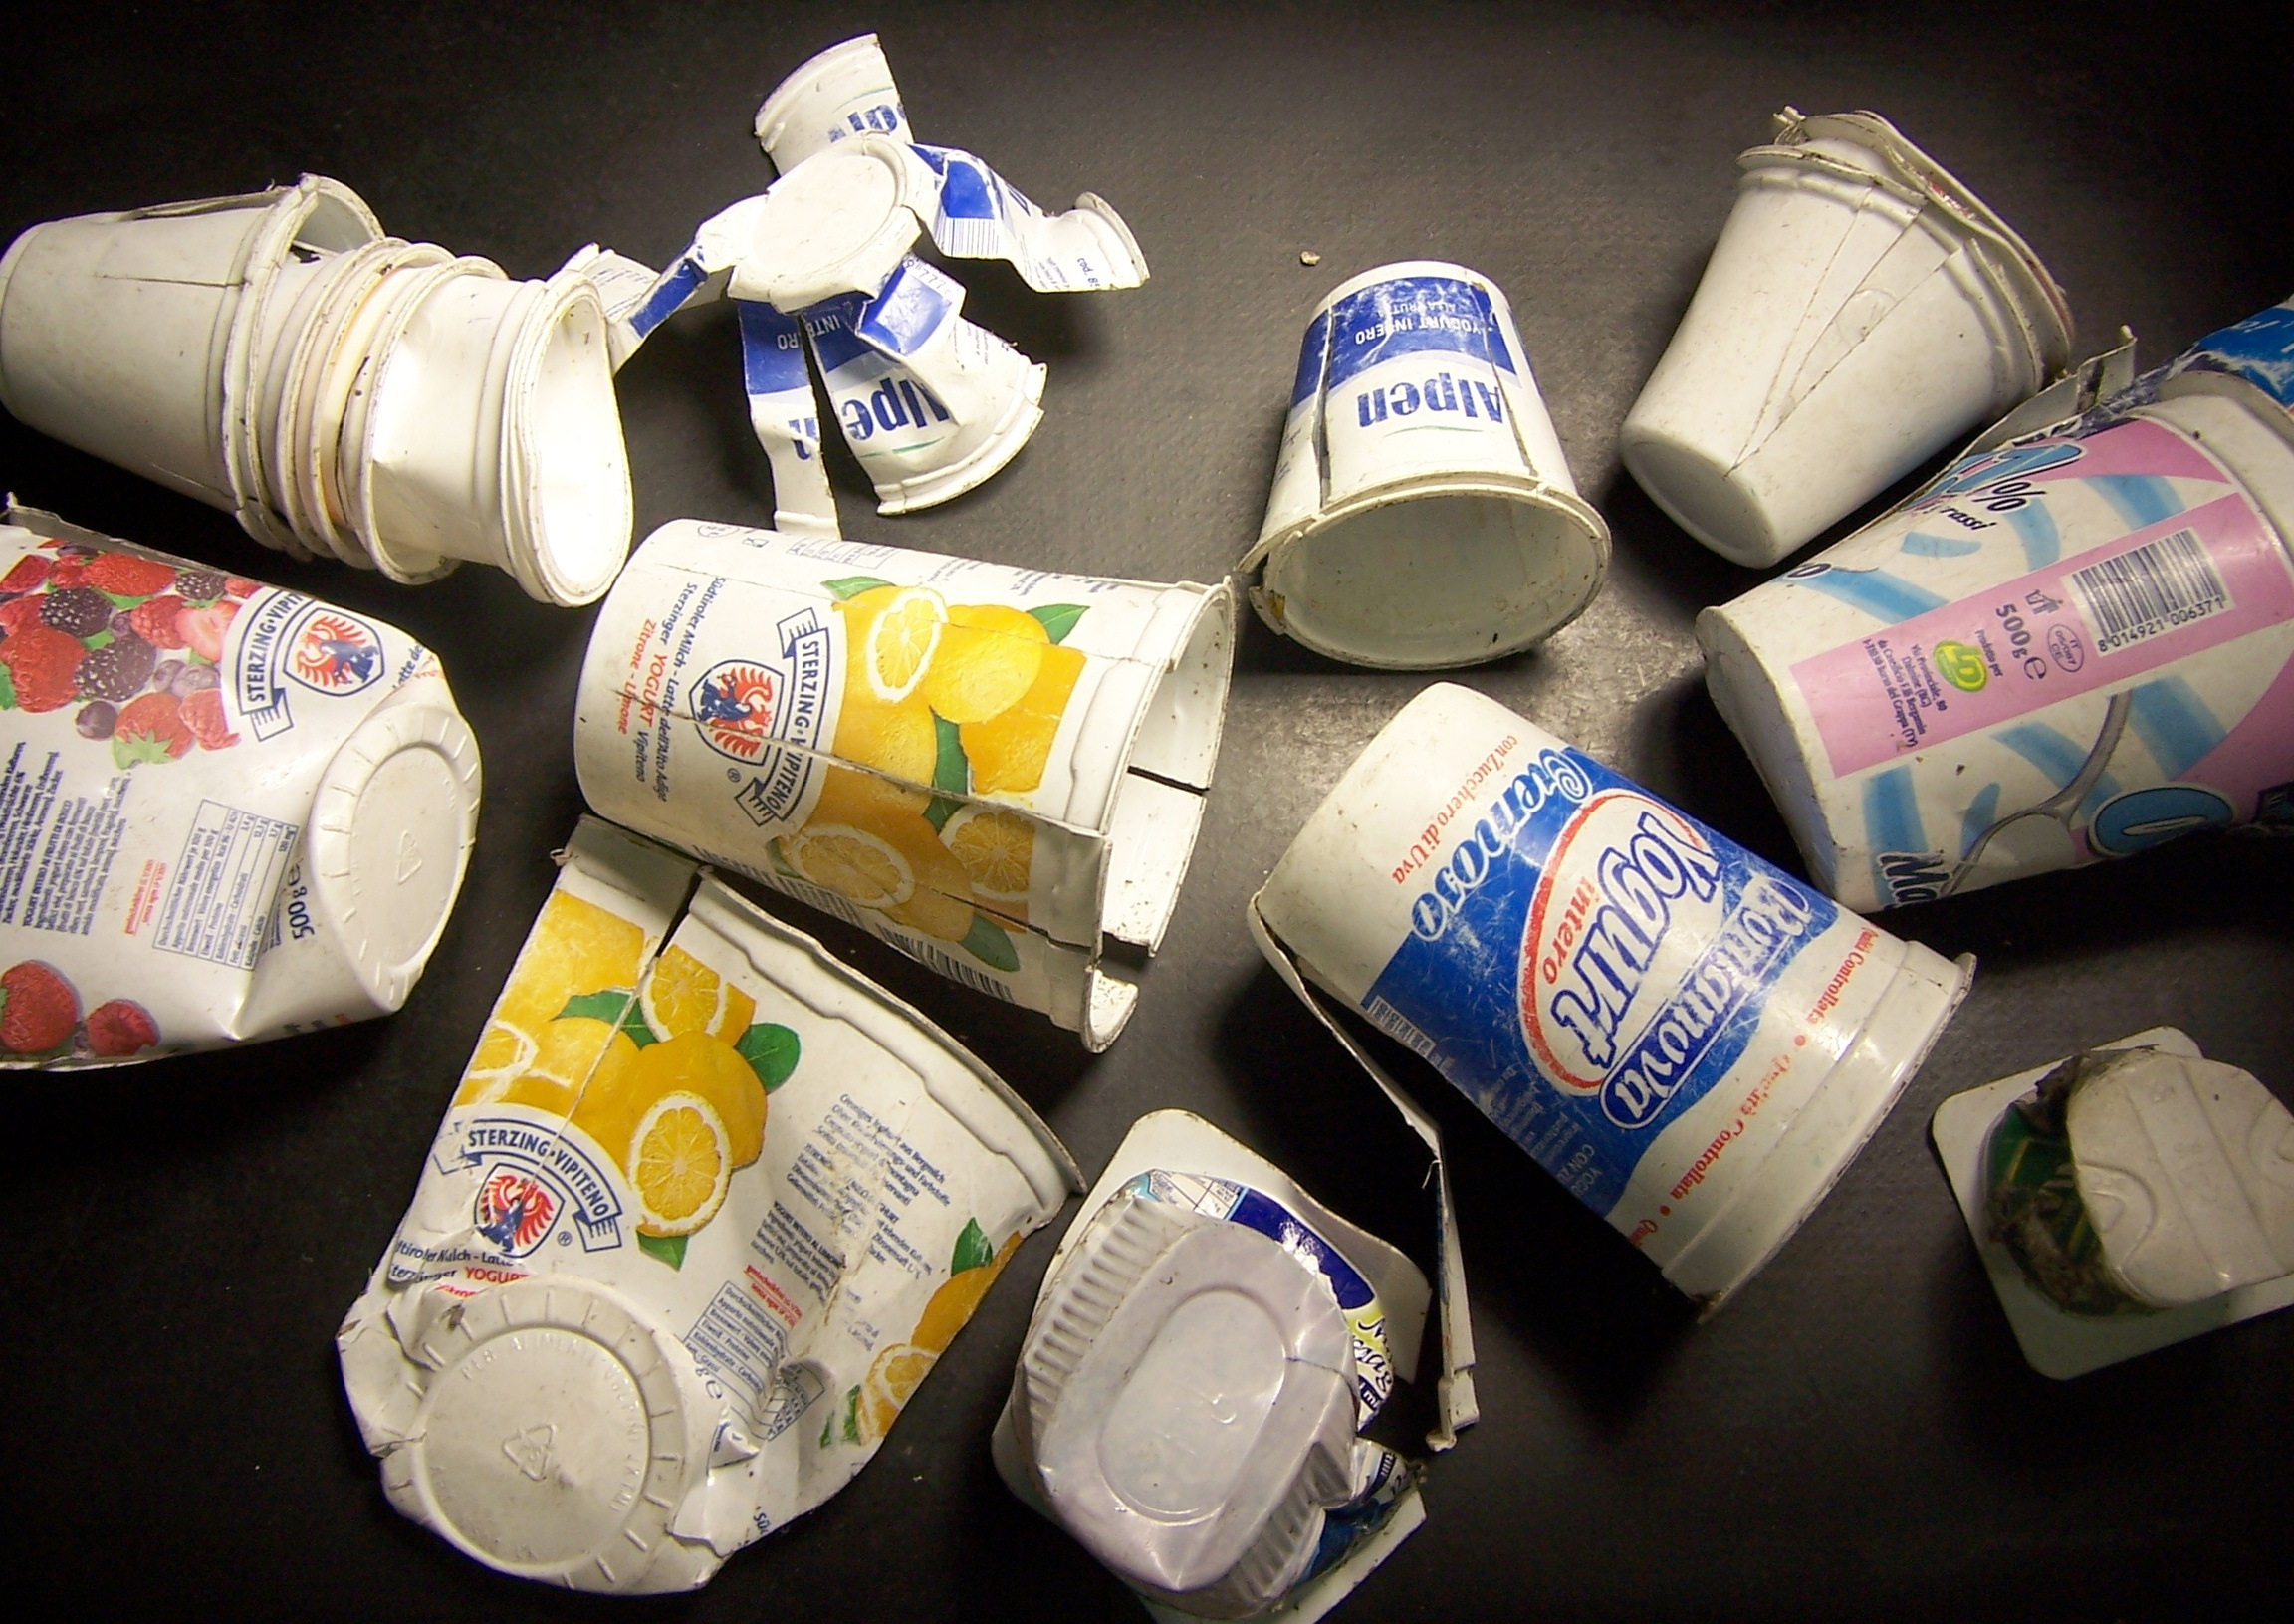 Thermoforms: Post-consumer packaging waste